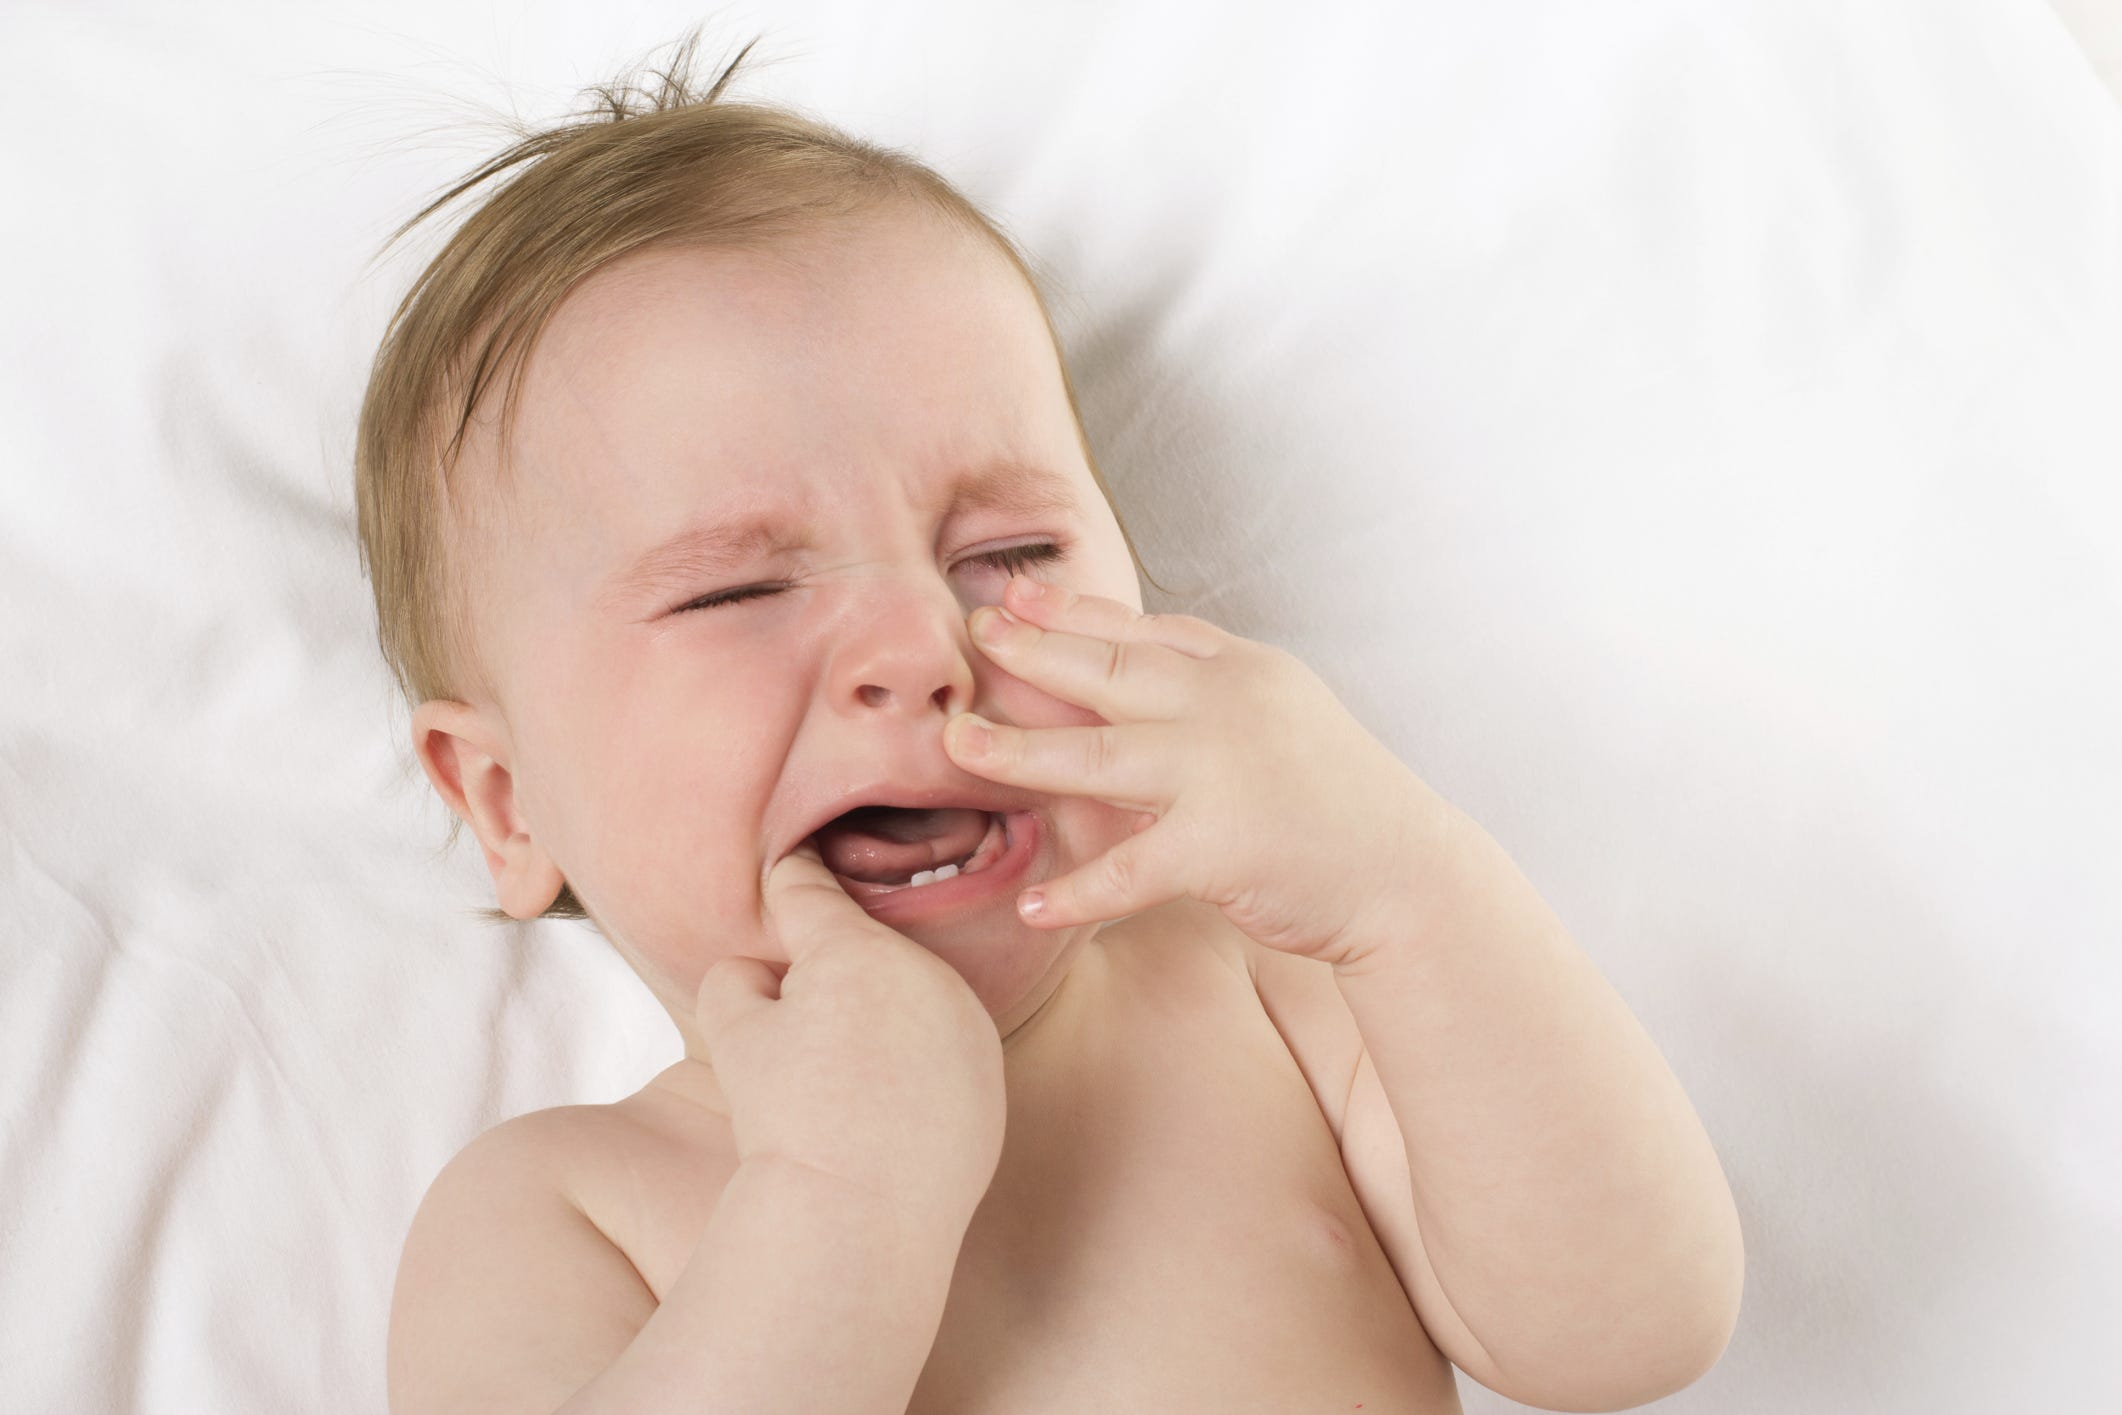 The rates of teething in children under one year and older: the order of appearance of the first teeth in infants with patterns and terms for the eruption of milk and permanent teeth according to Komarovsky 17